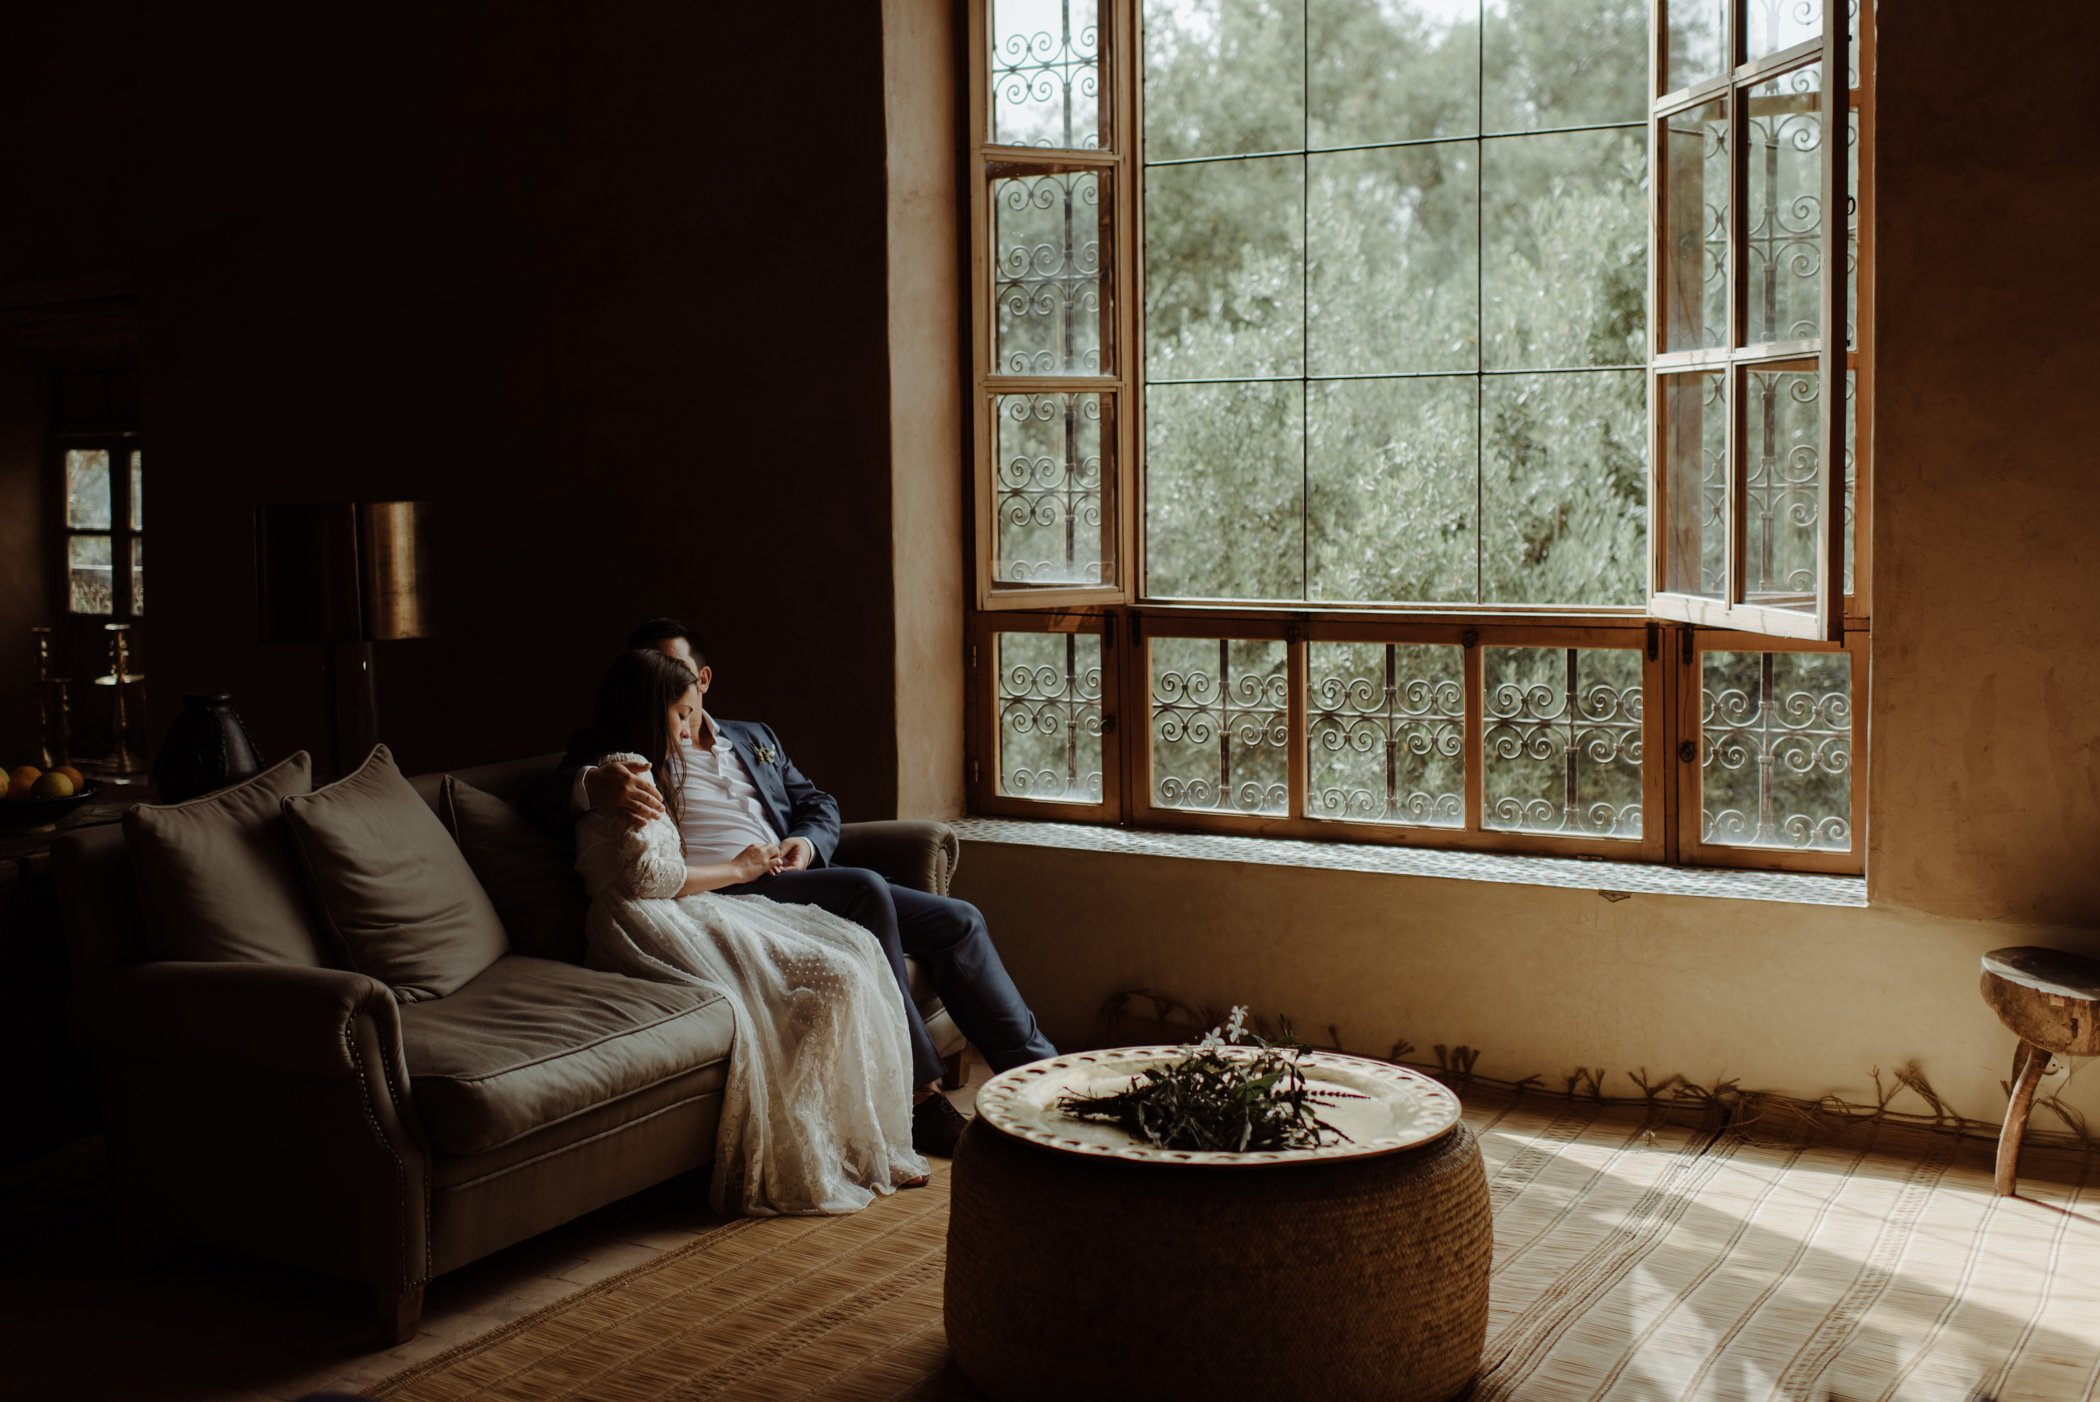 berber lodge morocco wedding photography 1 6